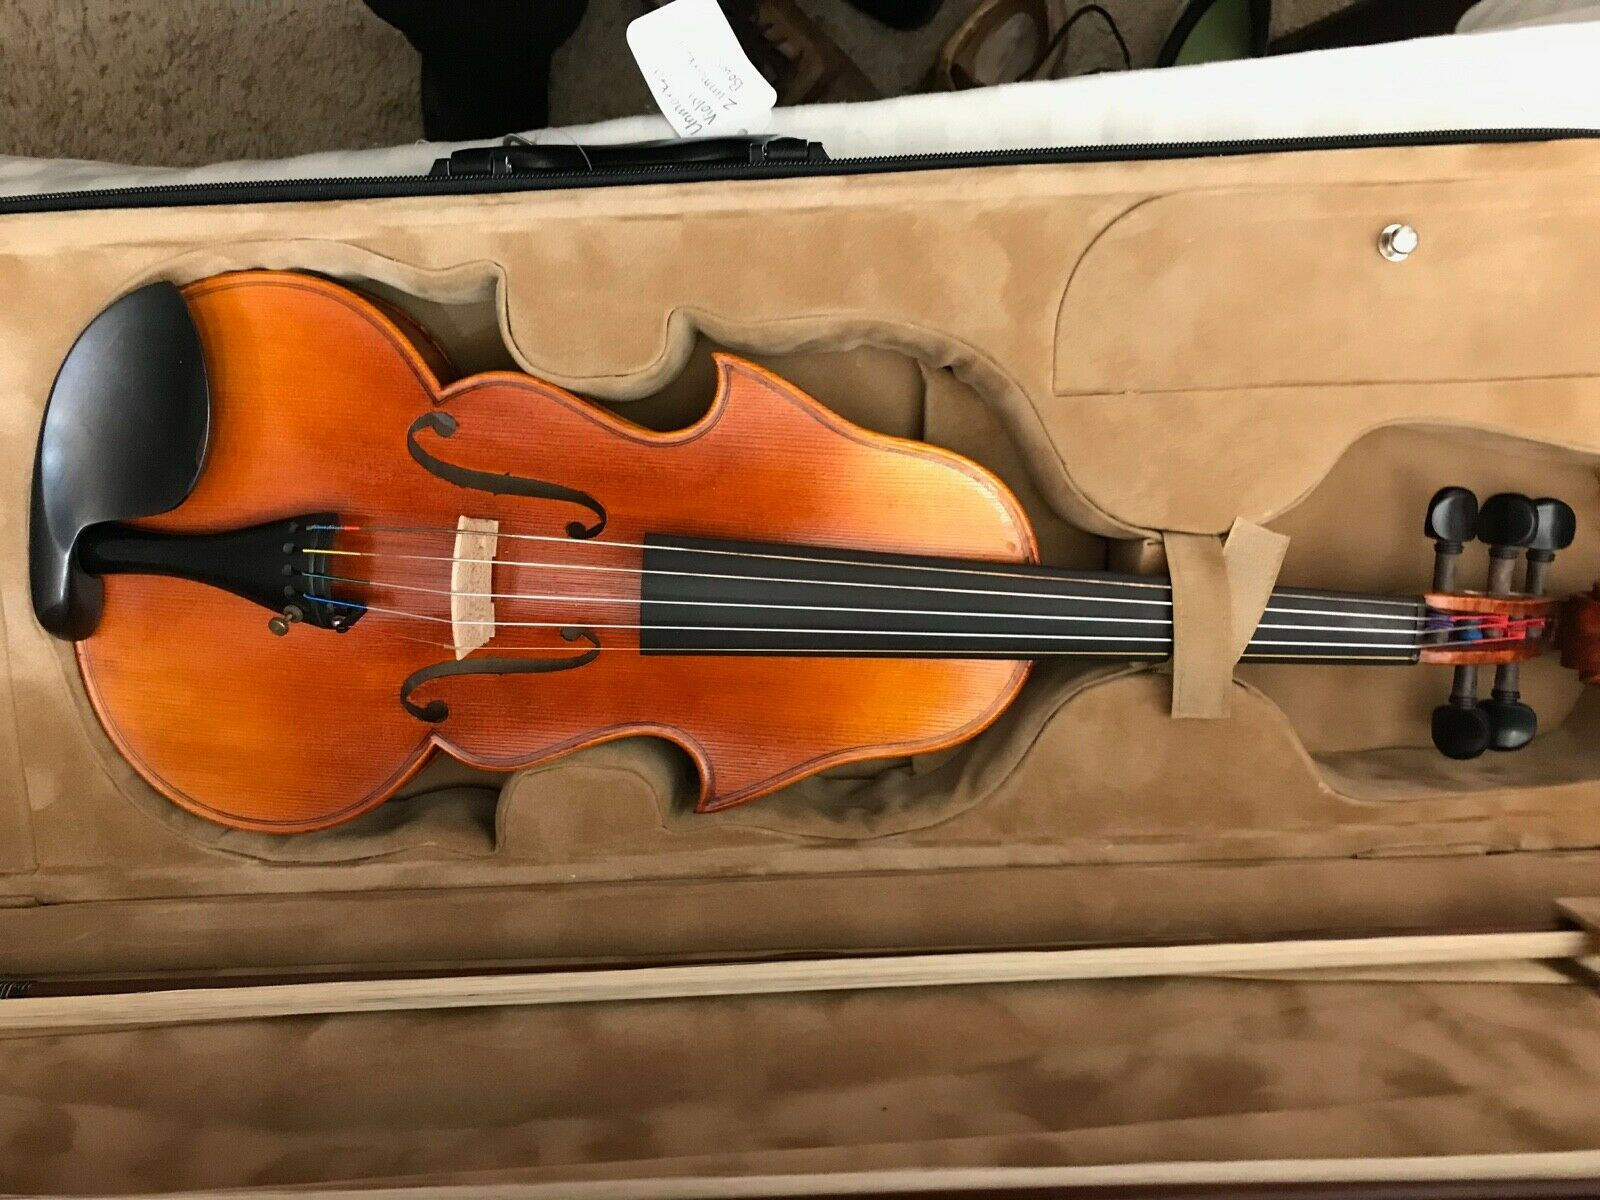 Brand new 4 4 5 strings violin with 2 brand new bows.